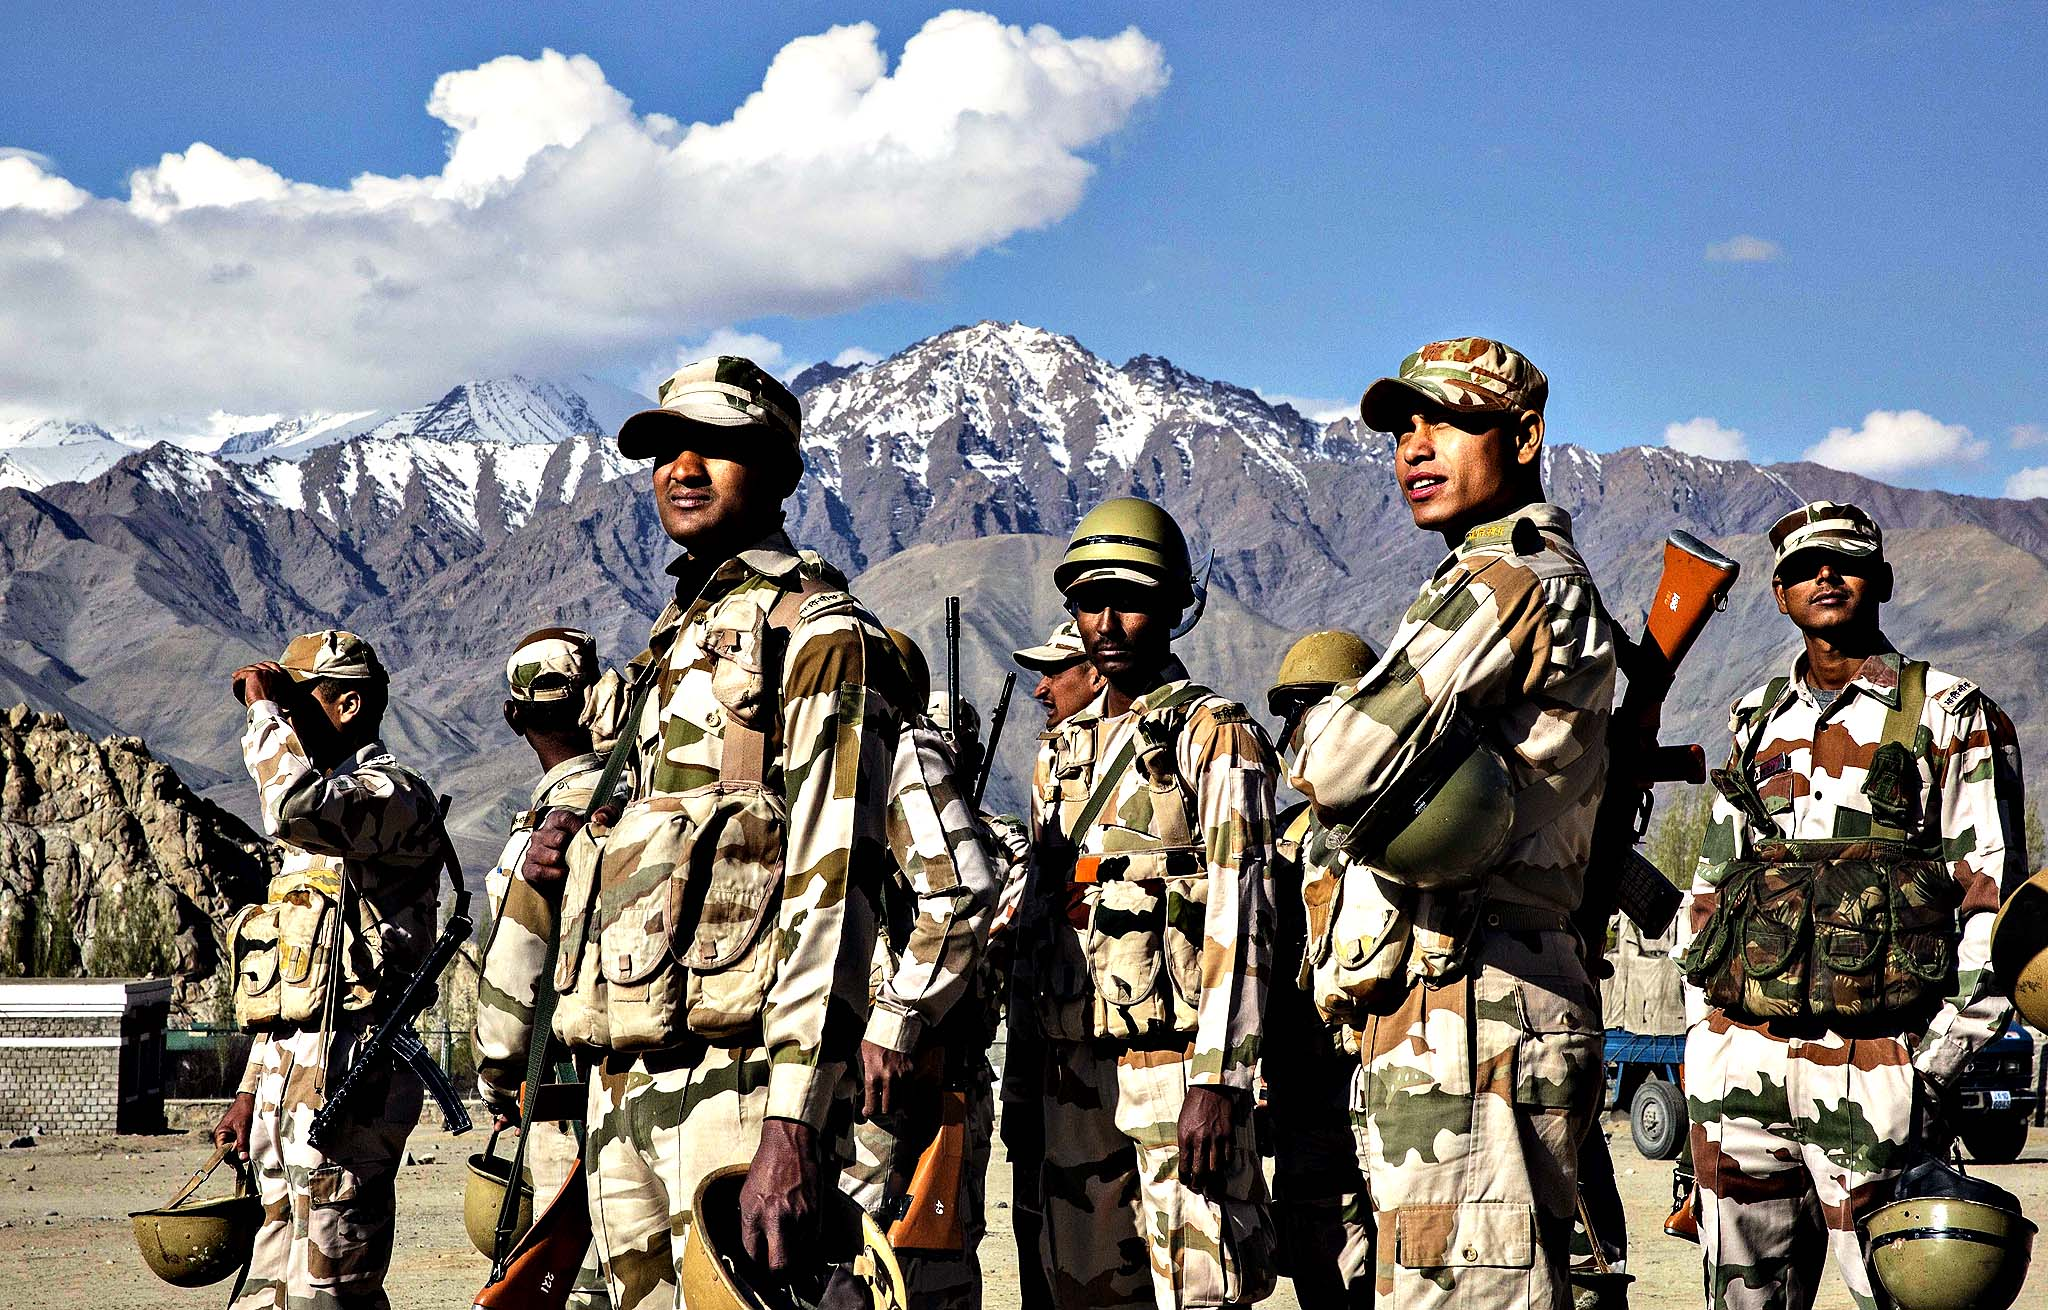 Indian security force soldiers on election duty wait to leave a central collection point to head to secure polling stations, on May 6, 2014 in Leh, Ladakh, India. India is in the midst of a nine phase election that began on April 7th and ends on May 12th. Ladakh voters will vote on May 7th